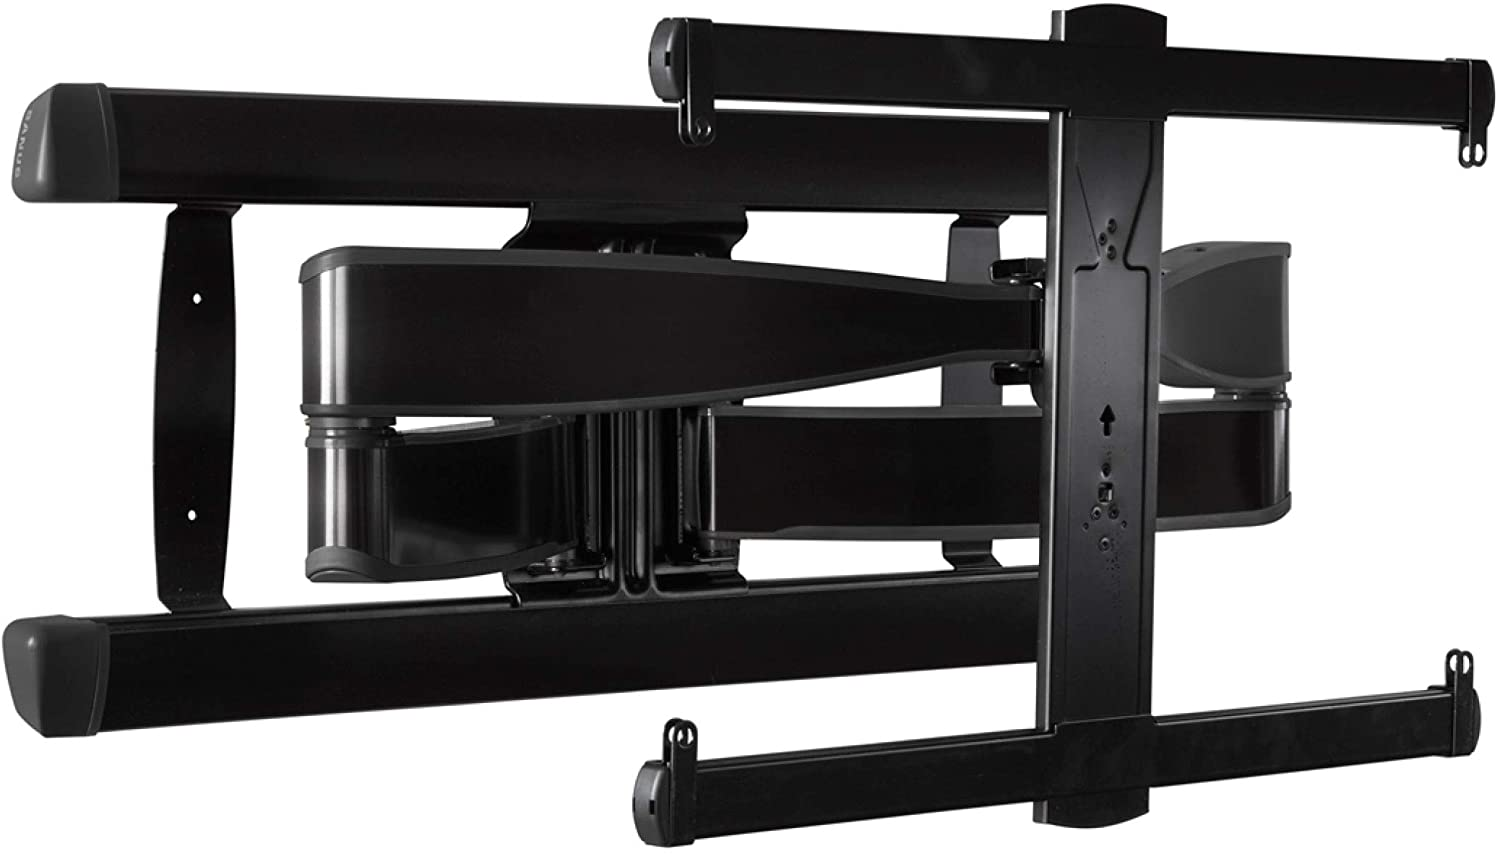 """Sanus Premium Full Motion TV Wall Mount for TVs Up to 90"""" - Brushed Black Finish with FluidMotion Design for Smooth Extension, Tilt,"""